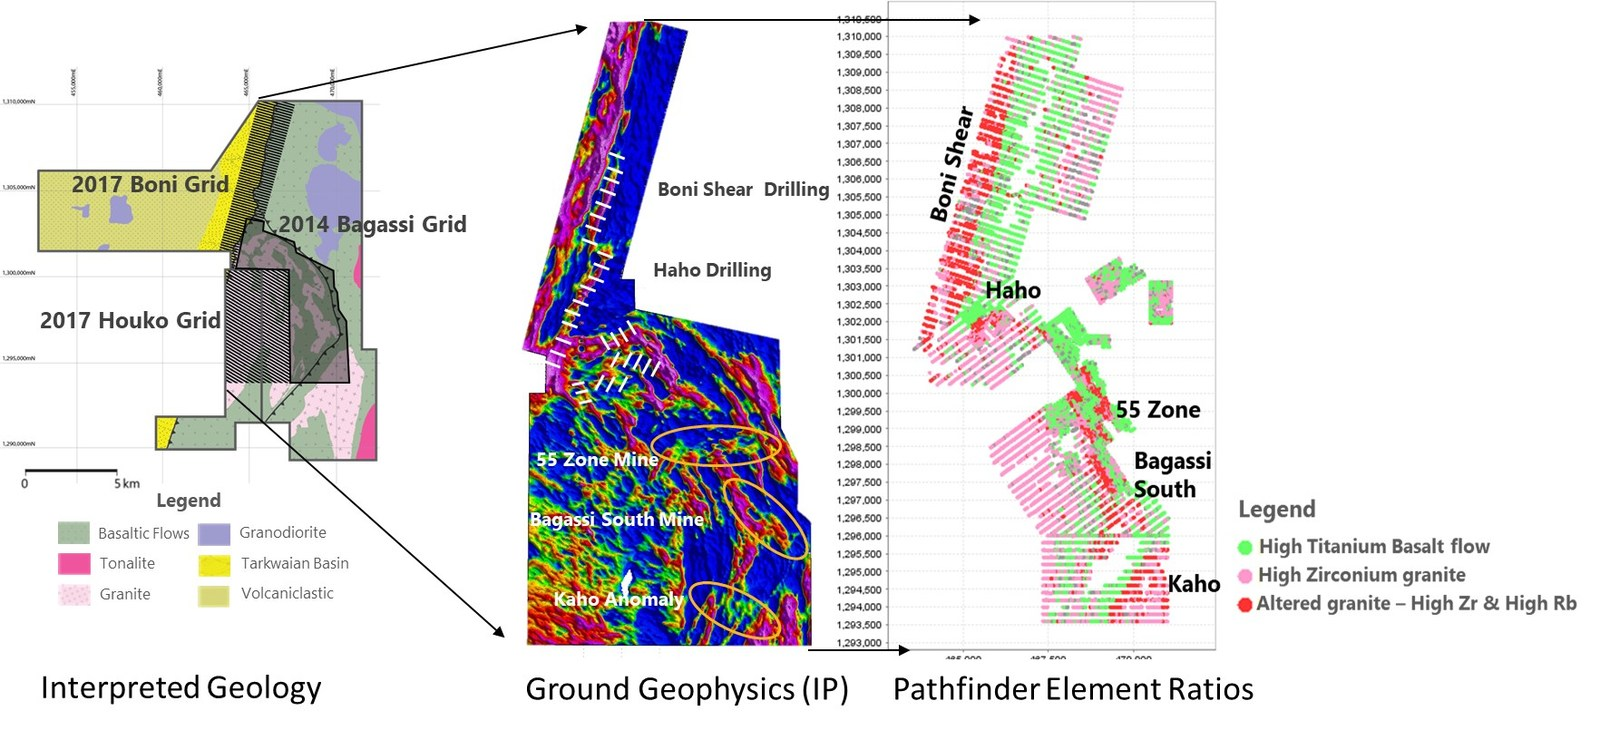 Figure 3: Lithogeochemistry, Geophysics and Kaho target